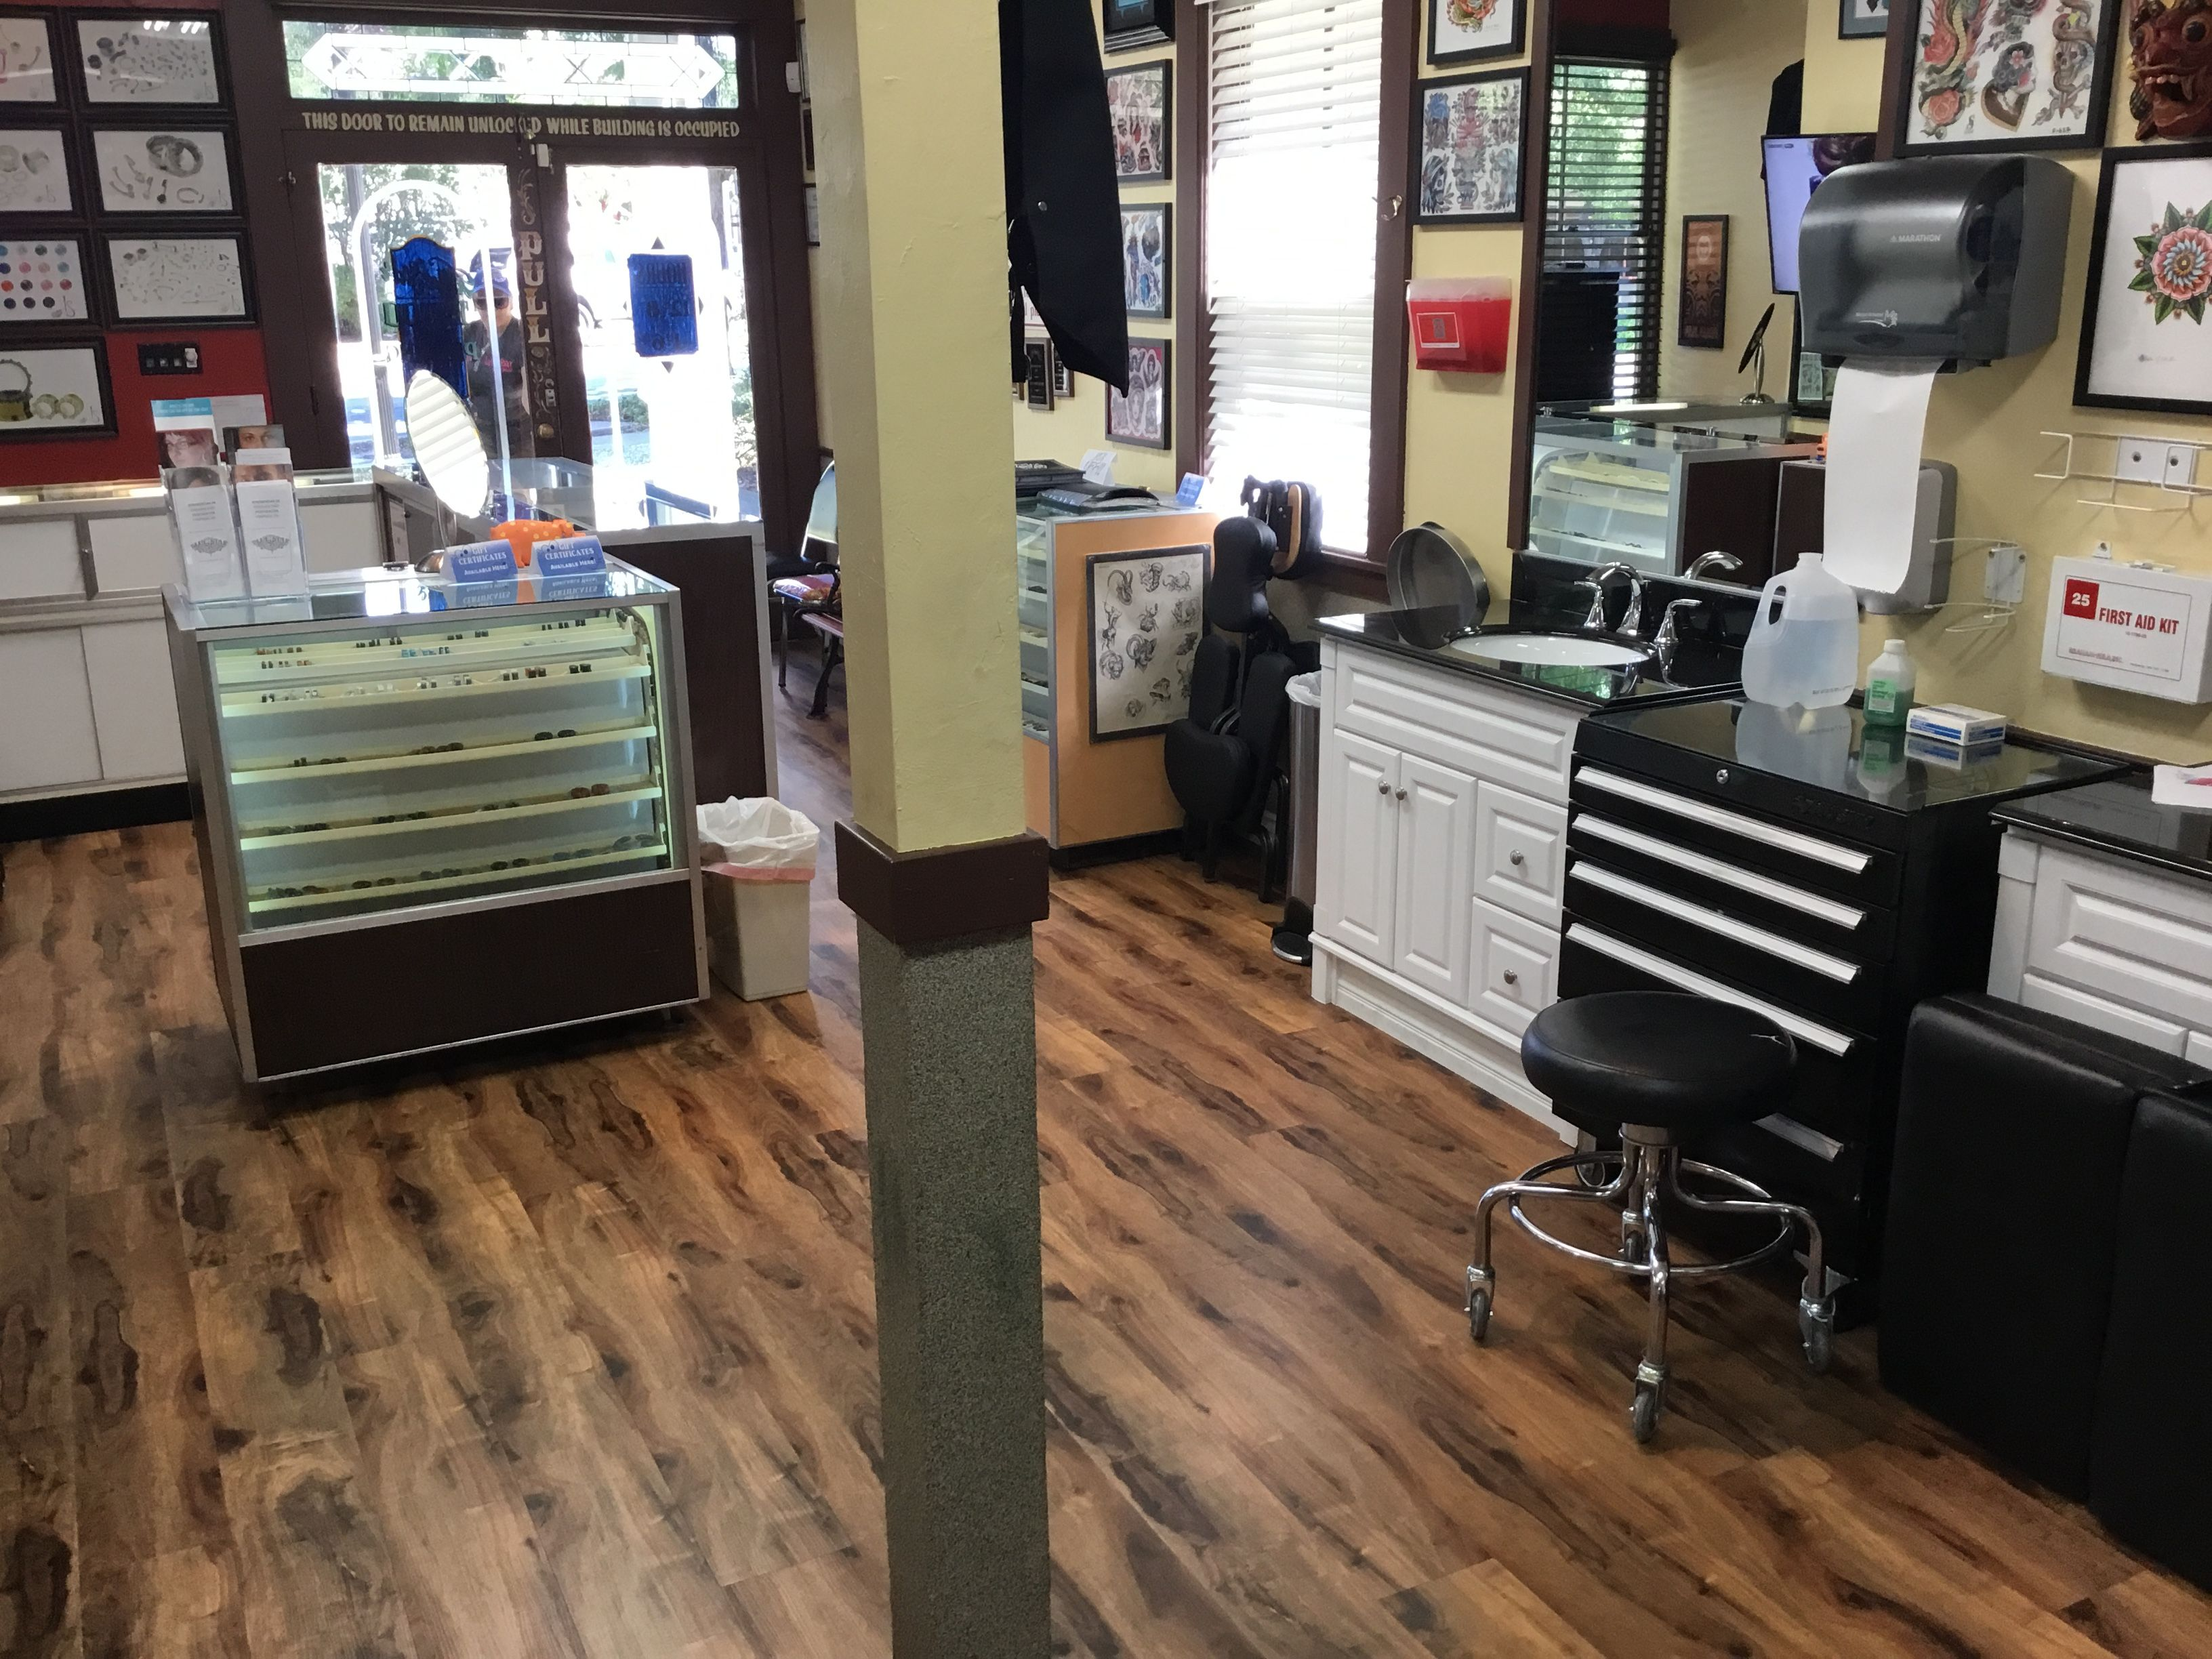 Inside the tattoo shop blue star and body piercing star